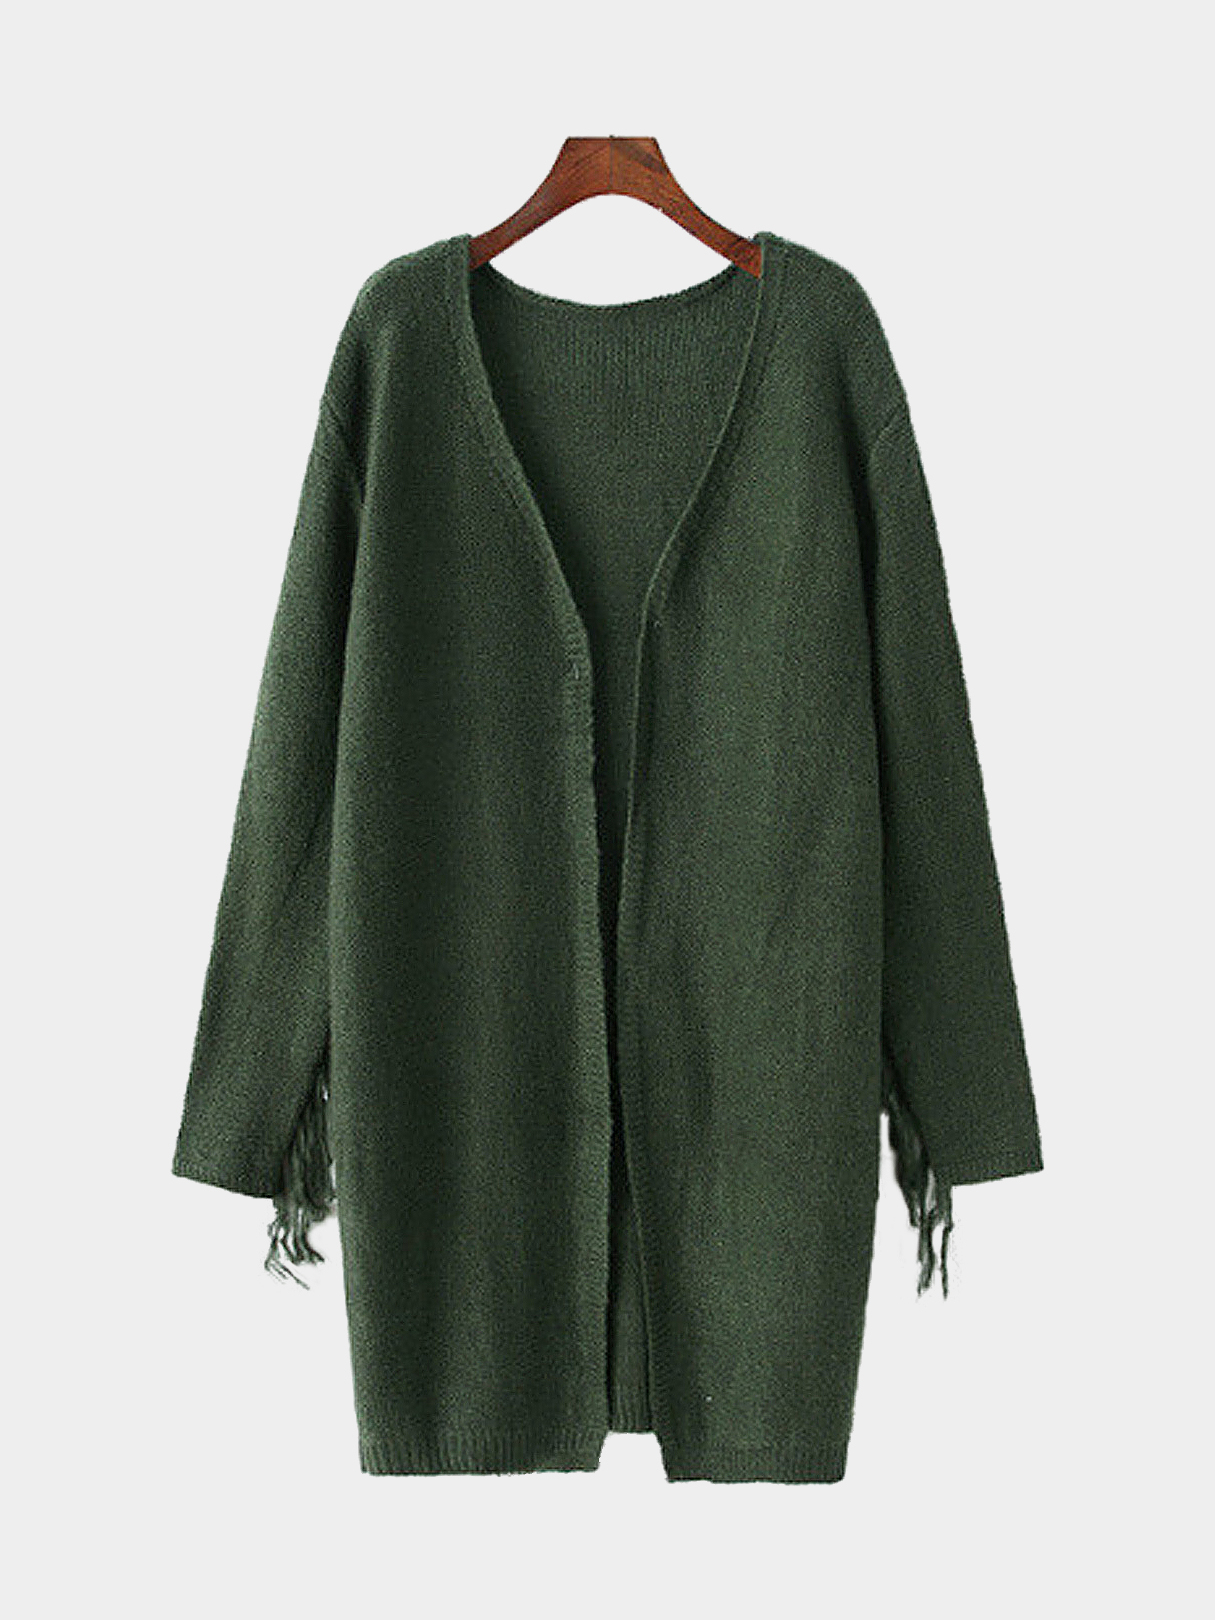 Fringed Longline Cardigan in Olive Green